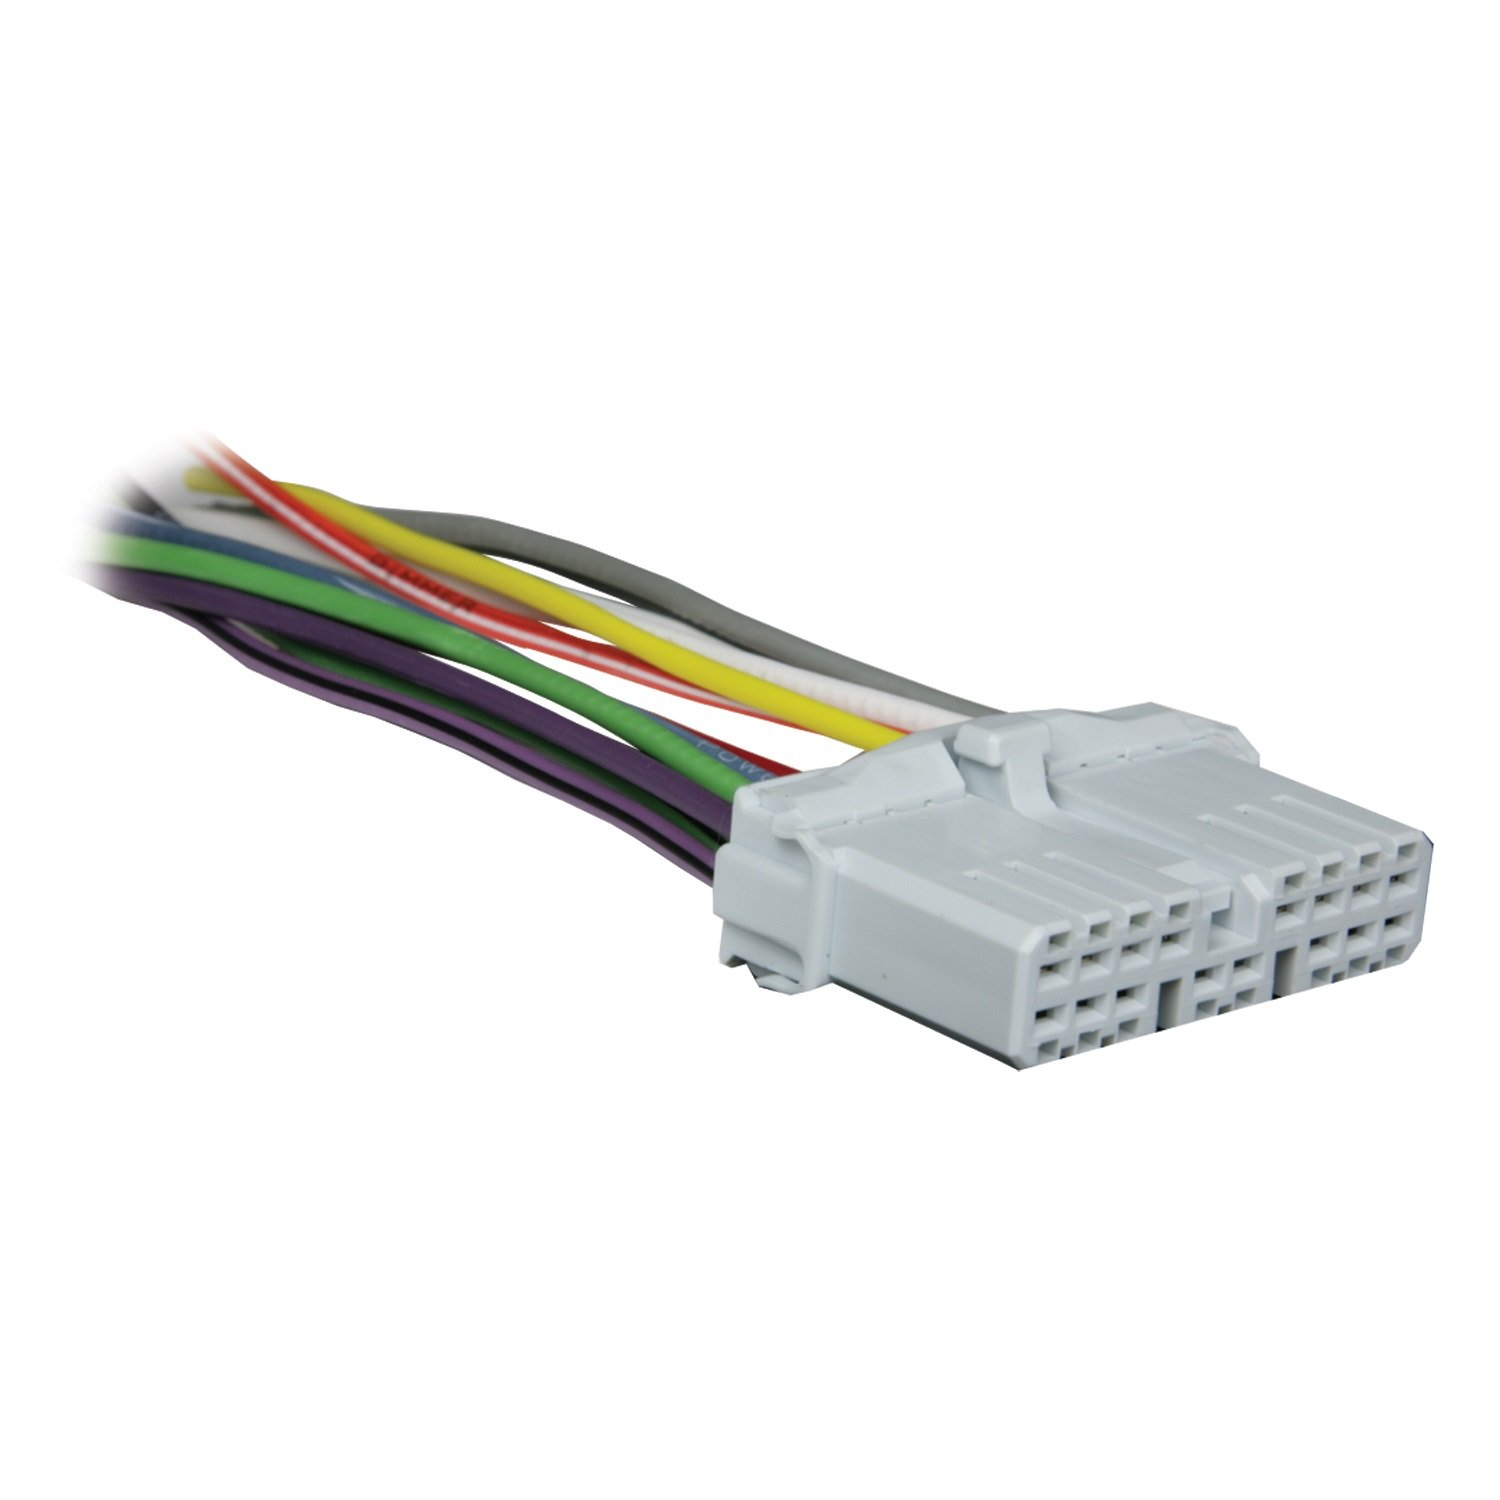 613QdgpH1YL._SL1500_ radio wiring harnesses amazon com ksc-wa100 wiring harness at nearapp.co